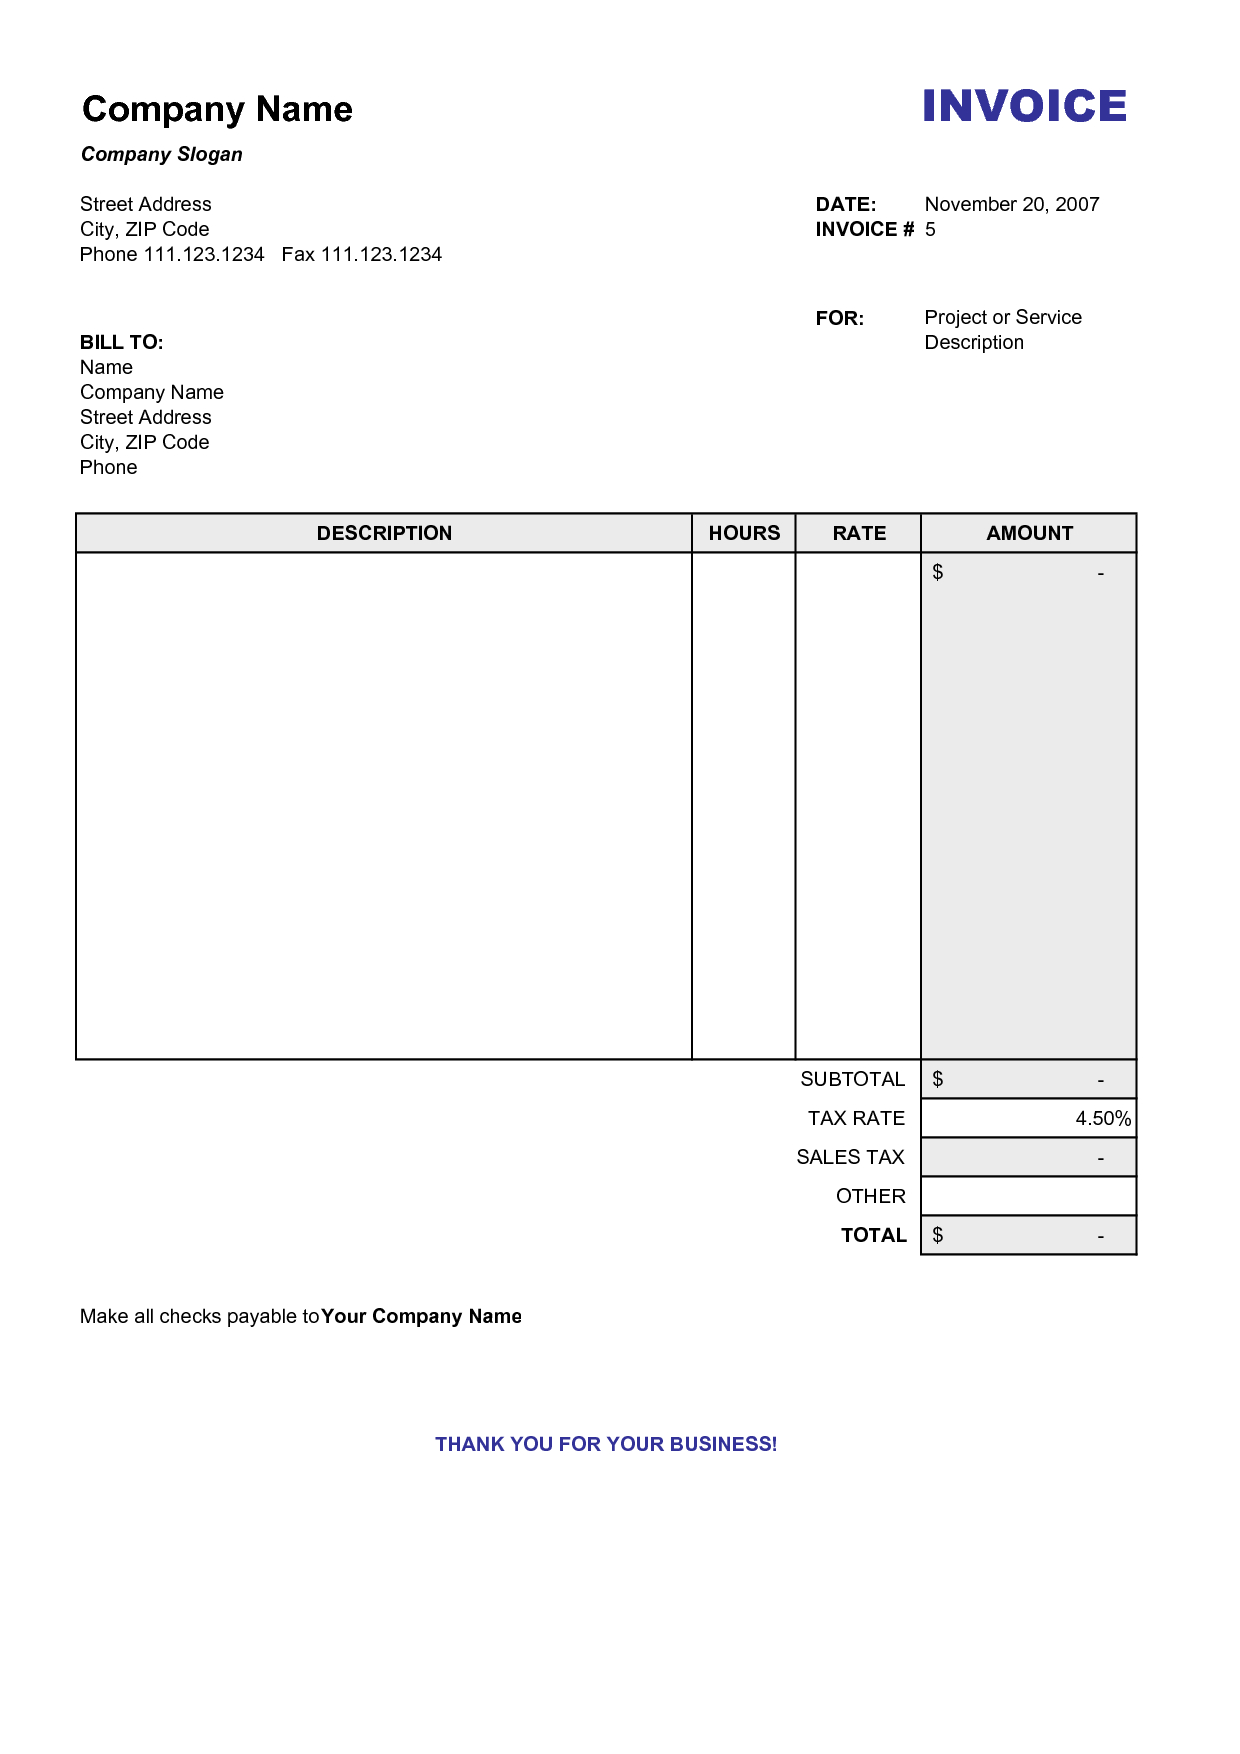 Blank Billing Invoice | Scope Of Work Template | Organization - Free Printable Blank Invoice Sheet